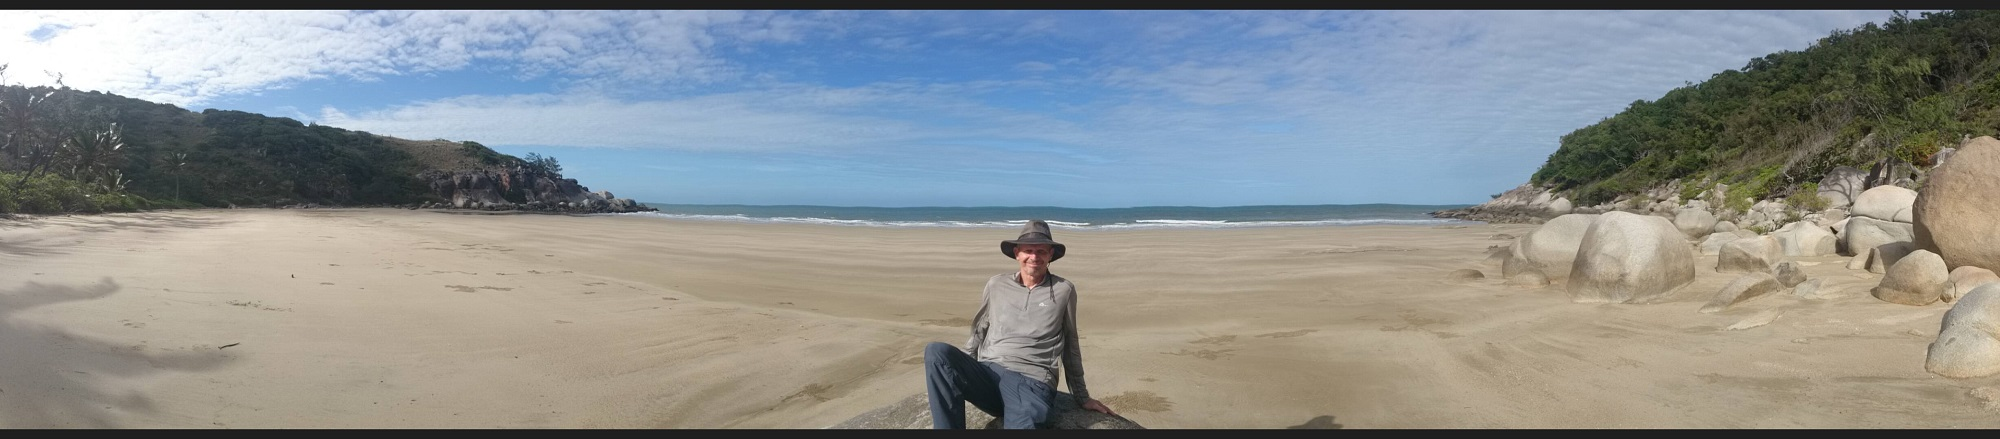 Ric, posing on a beautiful secluded beach.